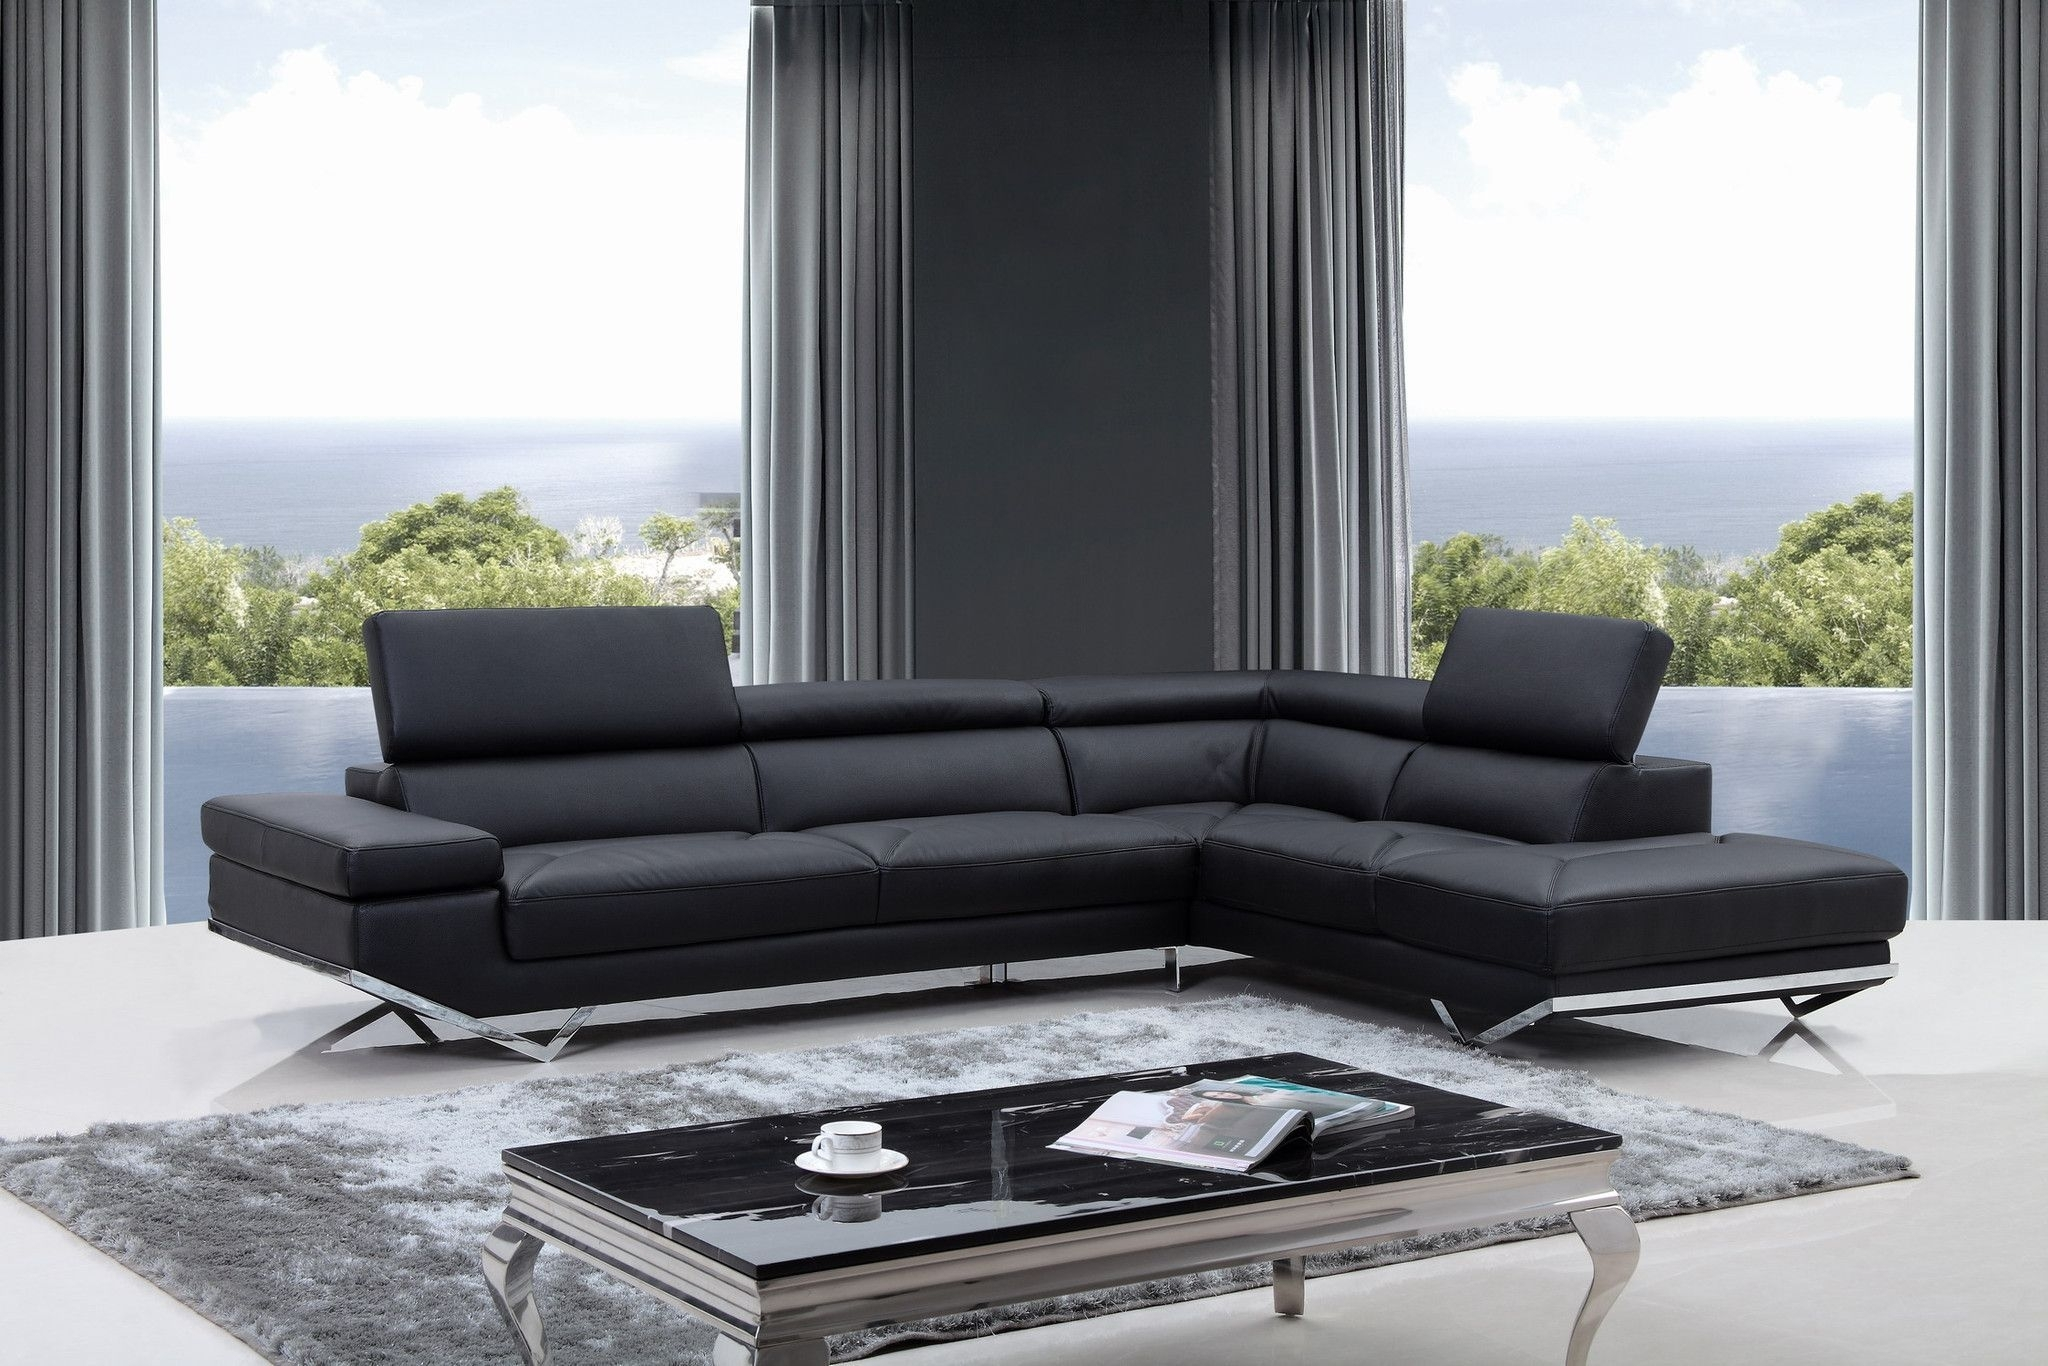 Divani Casa Quebec Modern Black Eco Leather Sectional Sofa | Media With Regard To Quebec Sectional Sofas (View 5 of 10)